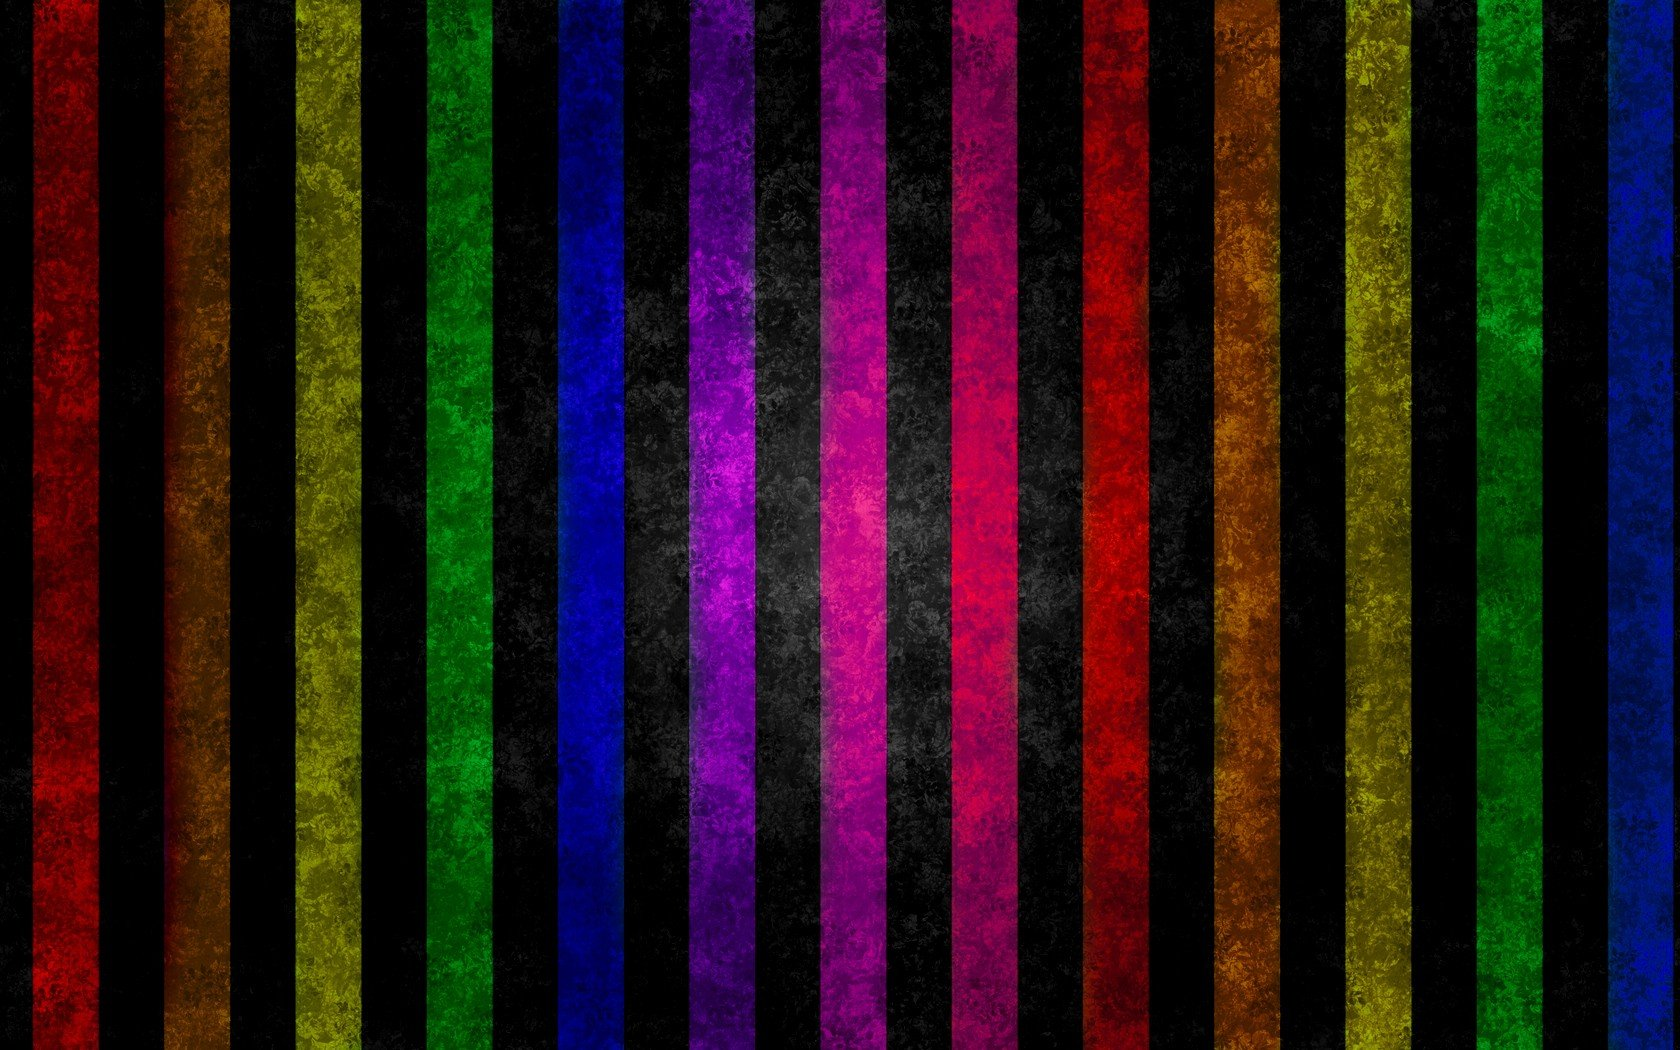 colour spectrum abstract background - photo #2